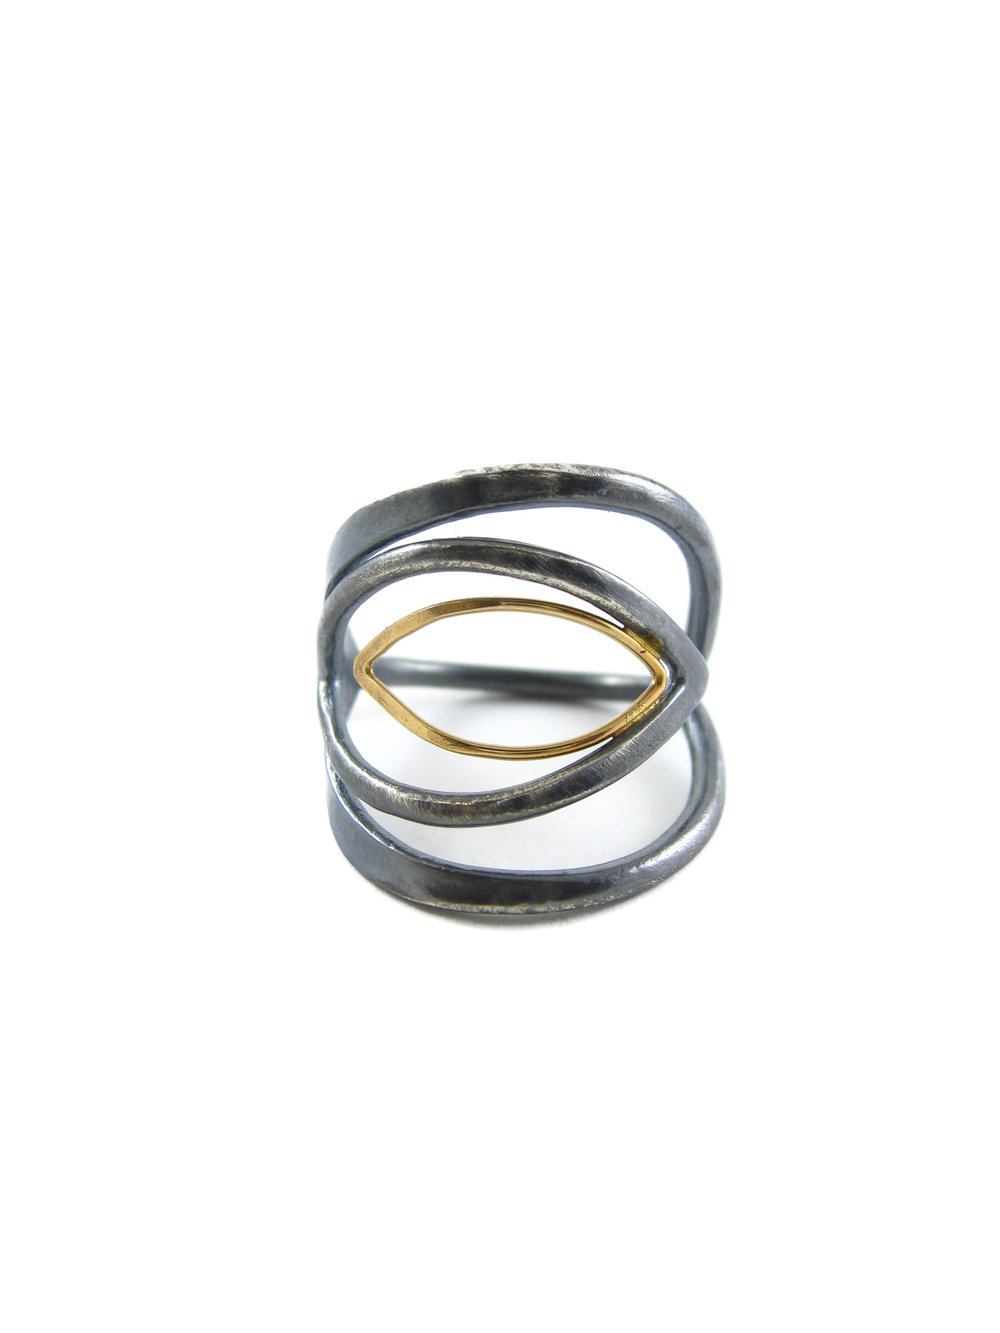 Marquise statement ring in oxidized silver and 18 karat gold - ethical metals - Sharon Z Jewelry RI-004-mix.jpg